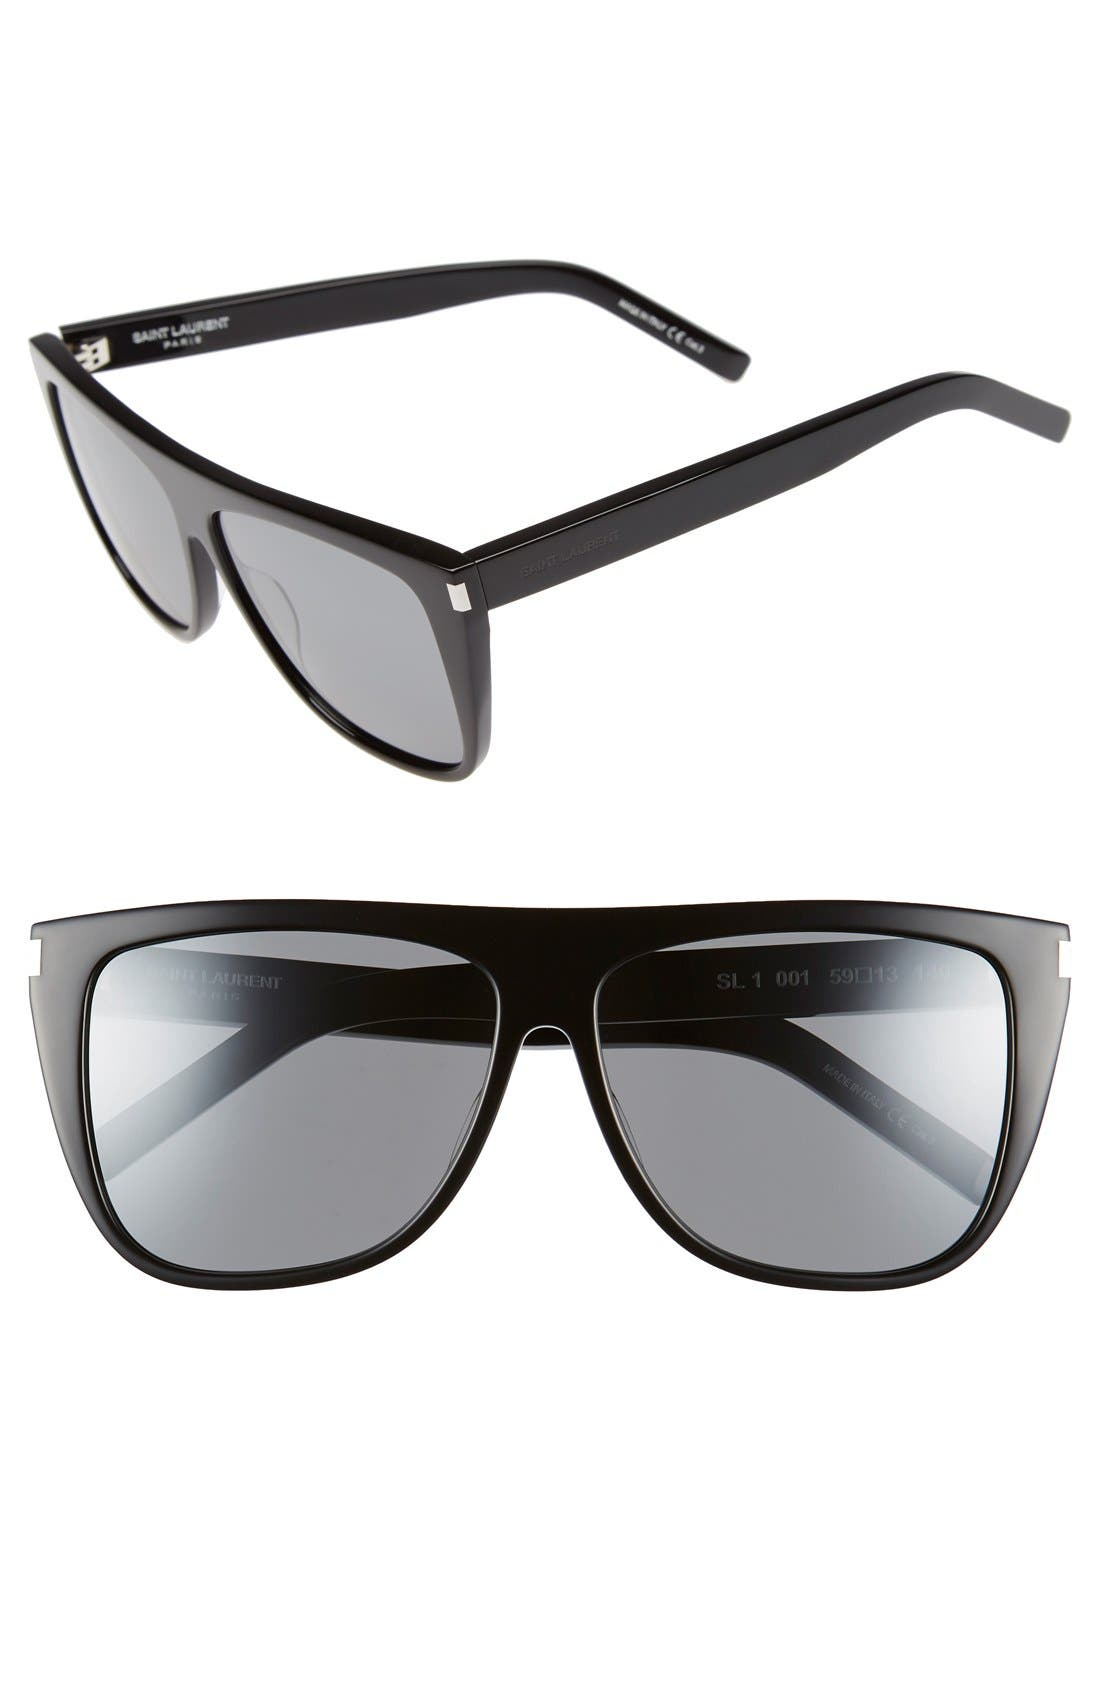 SAINT LAURENT SL1 59mm Flat Top Sunglasses, Main, color, BLACK/ SILVER